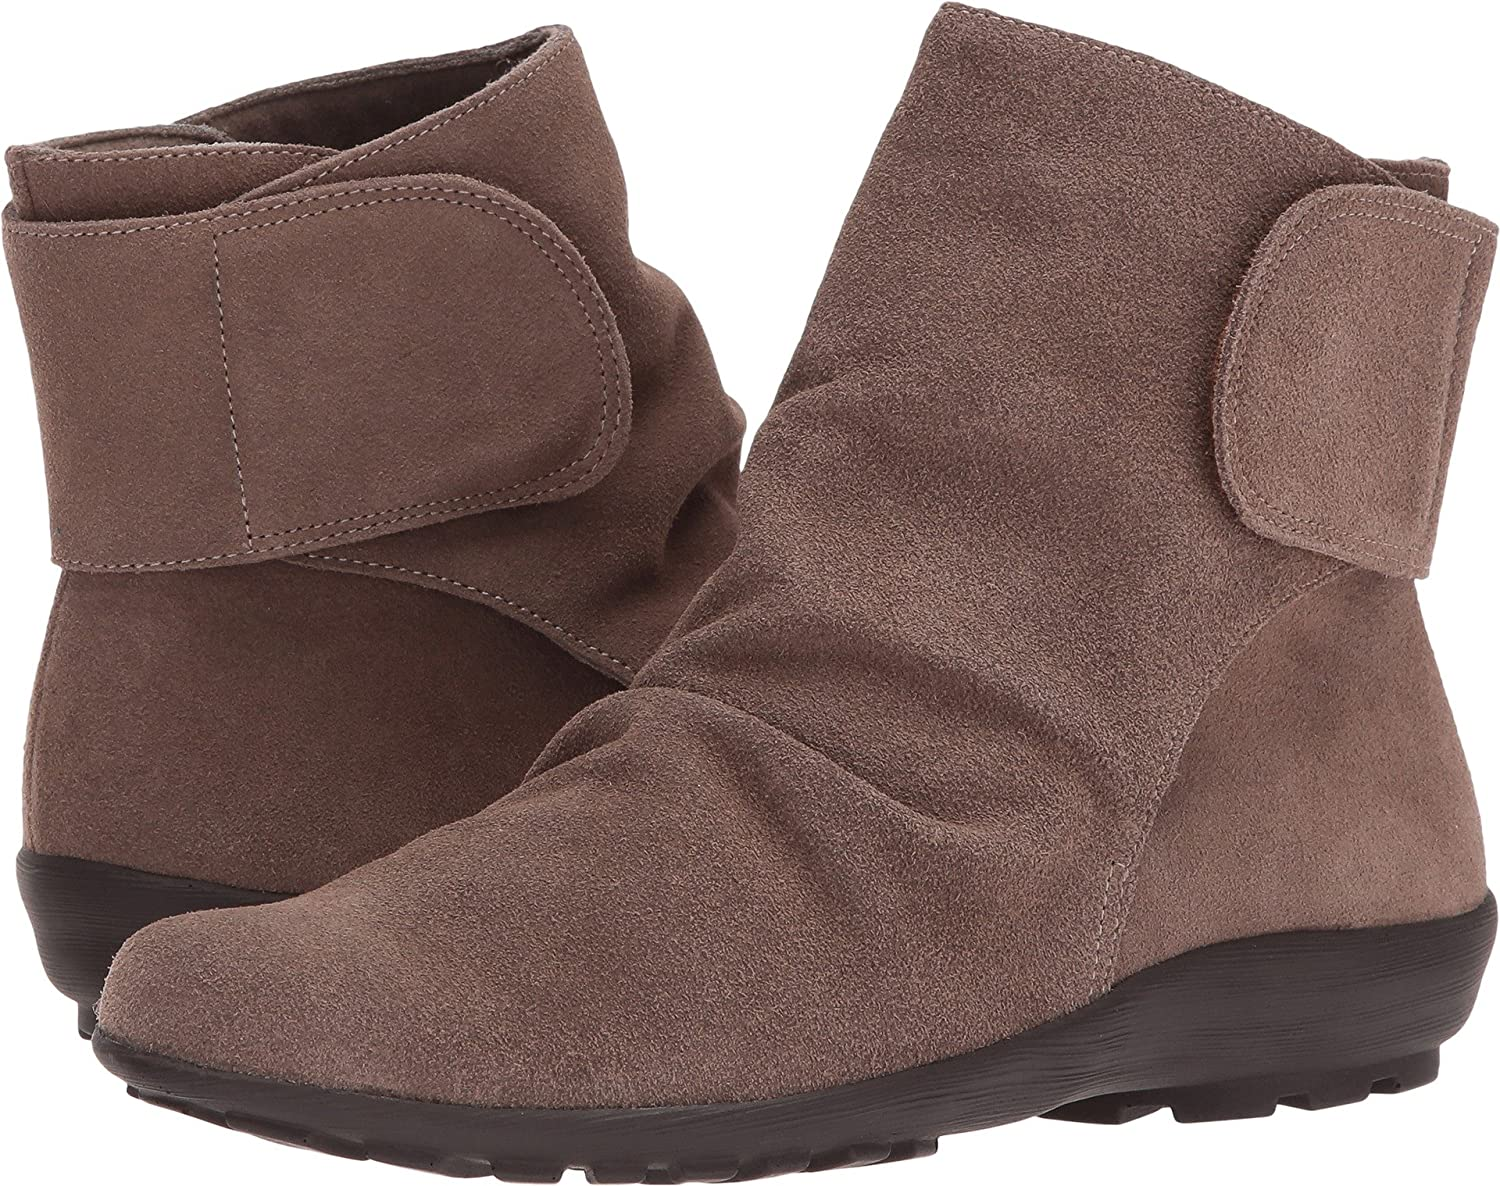 Walking Cradles Women's Harlow Ankle US|Taupe Boot B01MUE2BY4 8.5 B(M) US|Taupe Ankle Max Suede 0a0b36